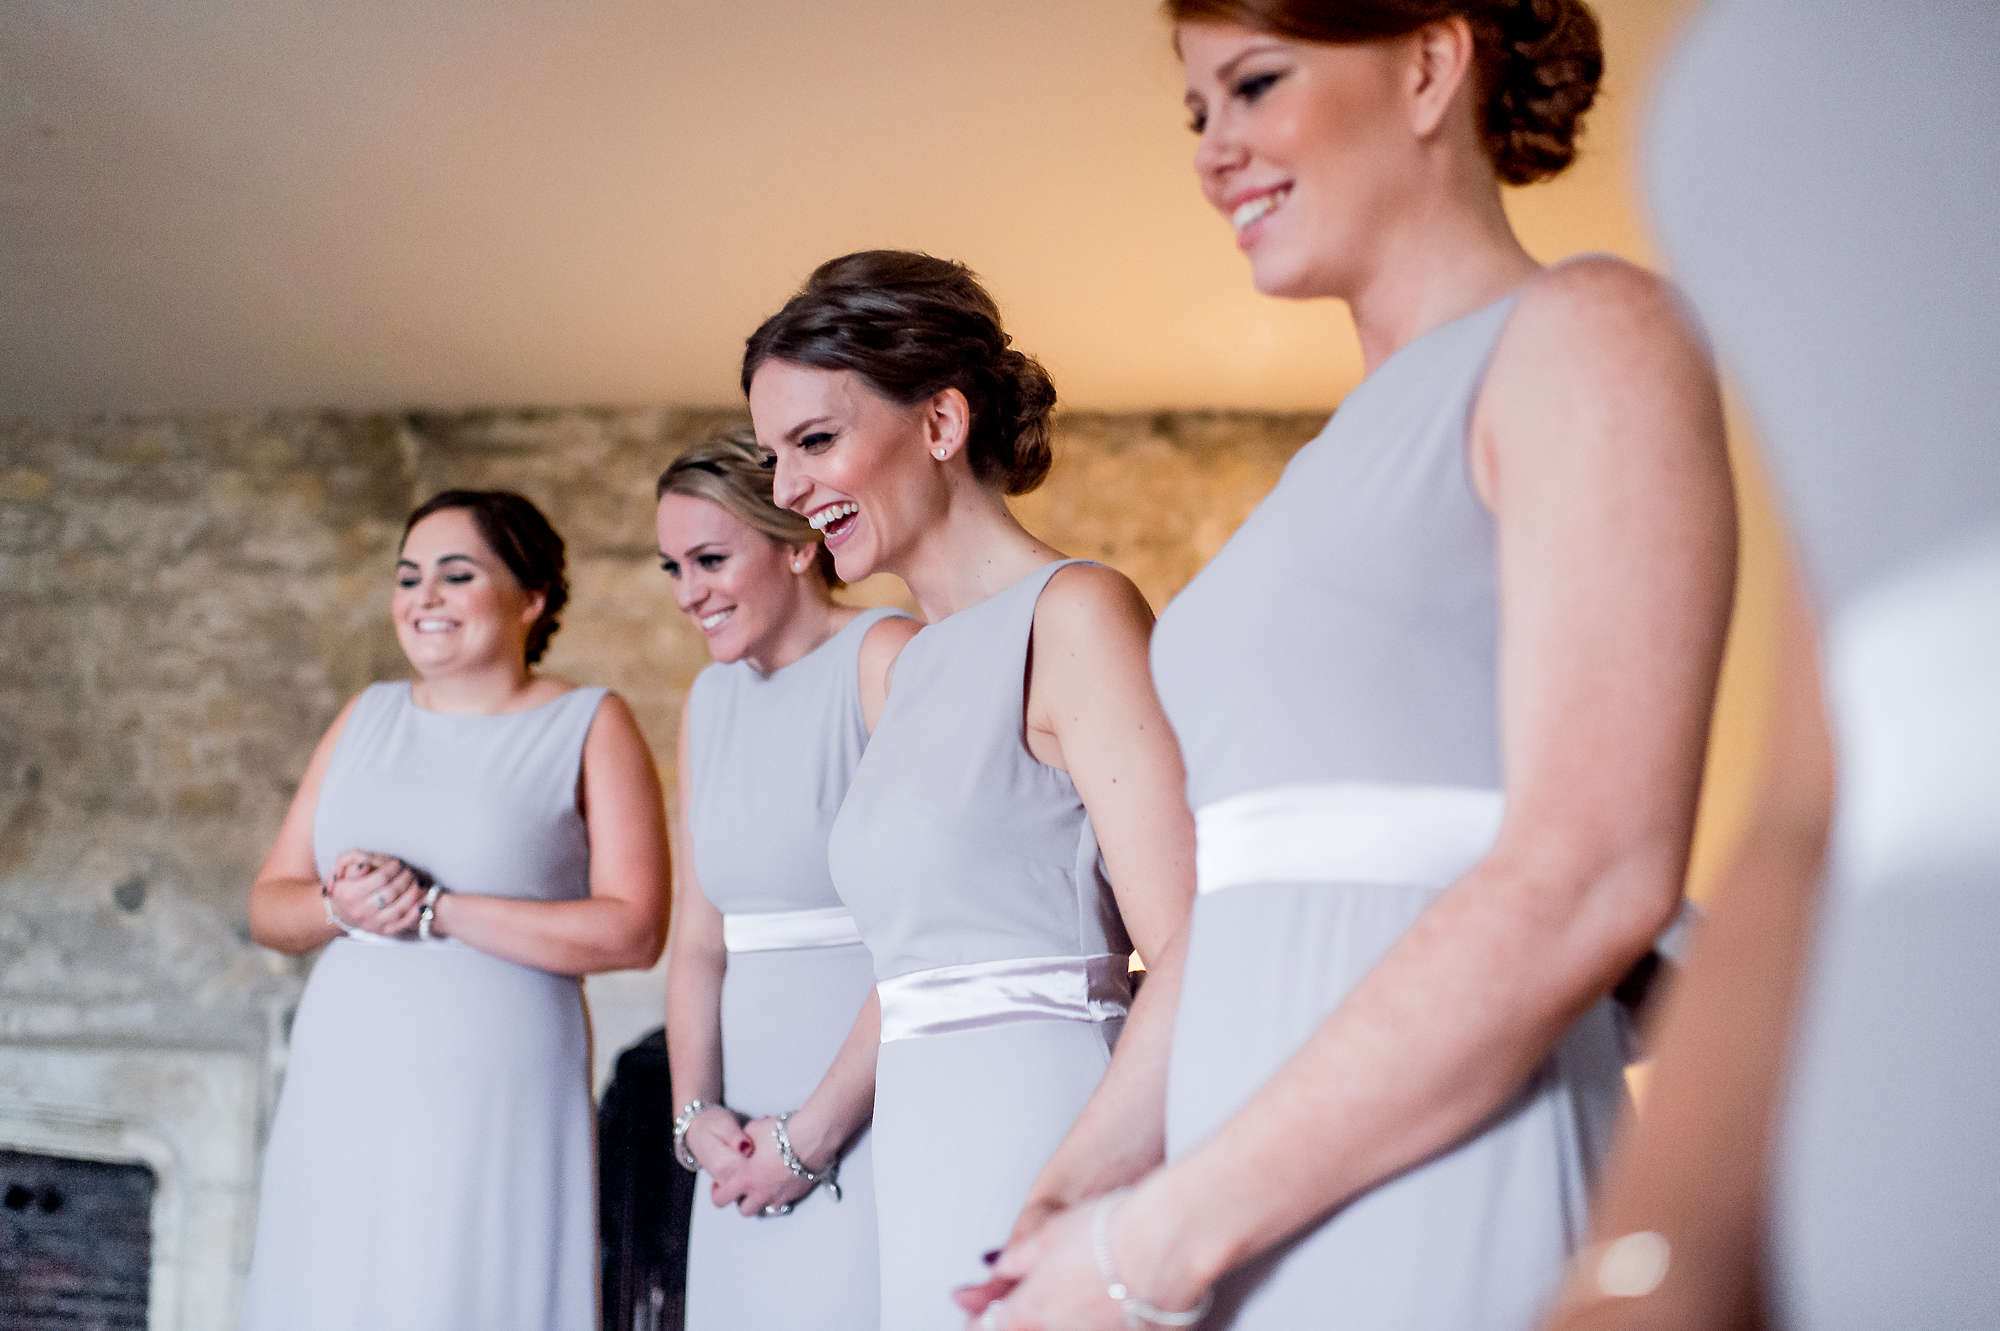 Priory cottages wedding photographer 0039